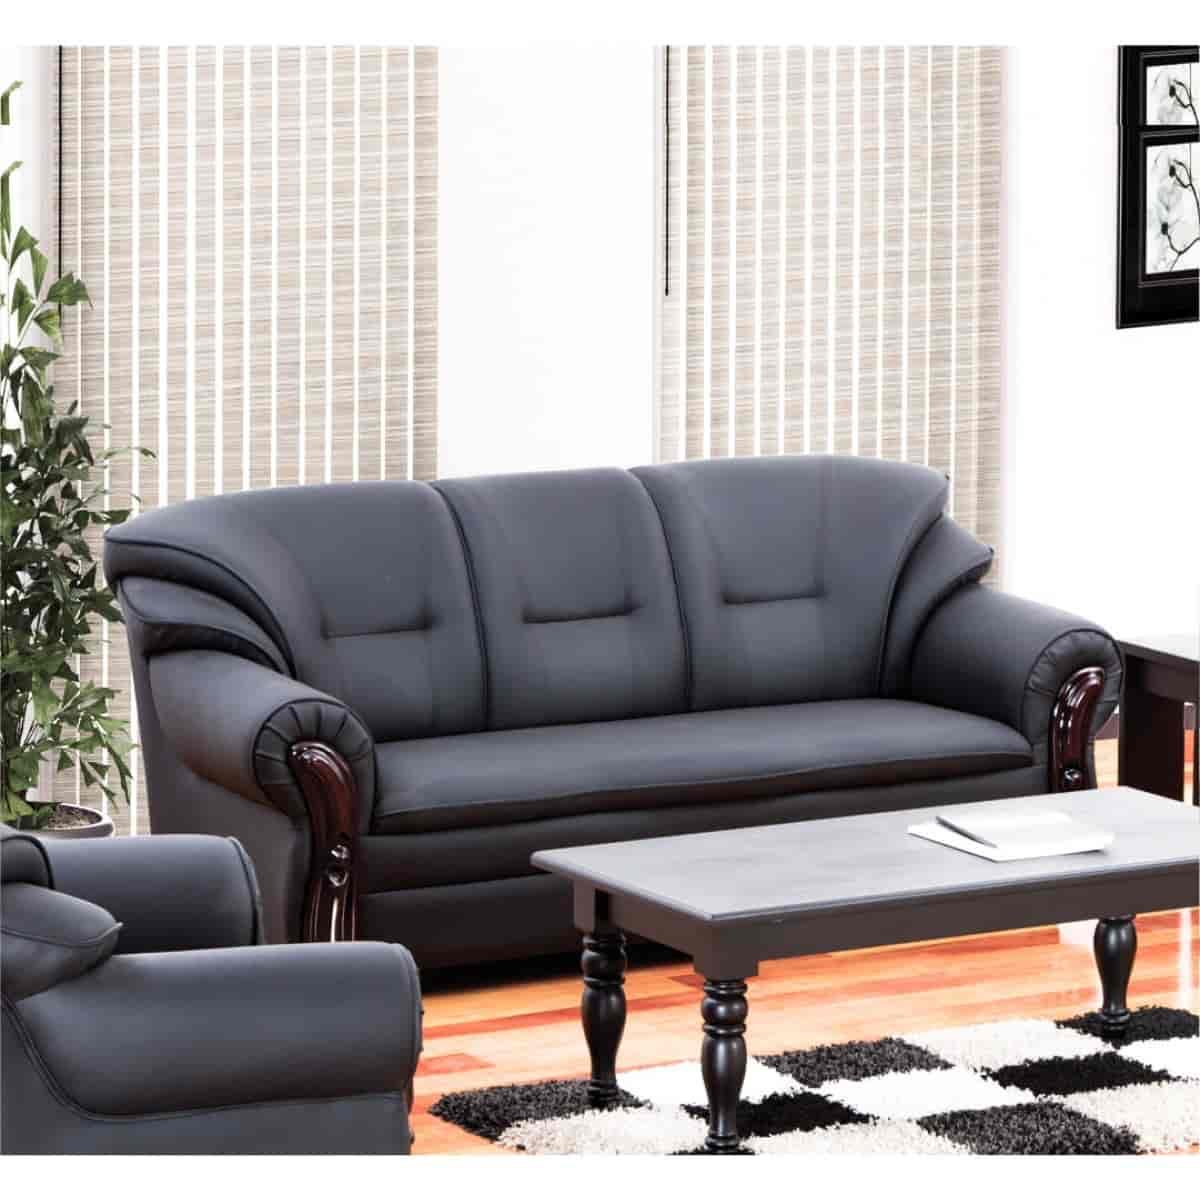 Sofa Set Price New Sofa Set Price 5 Seater Fully Cover Sofa Set Dimensions 81